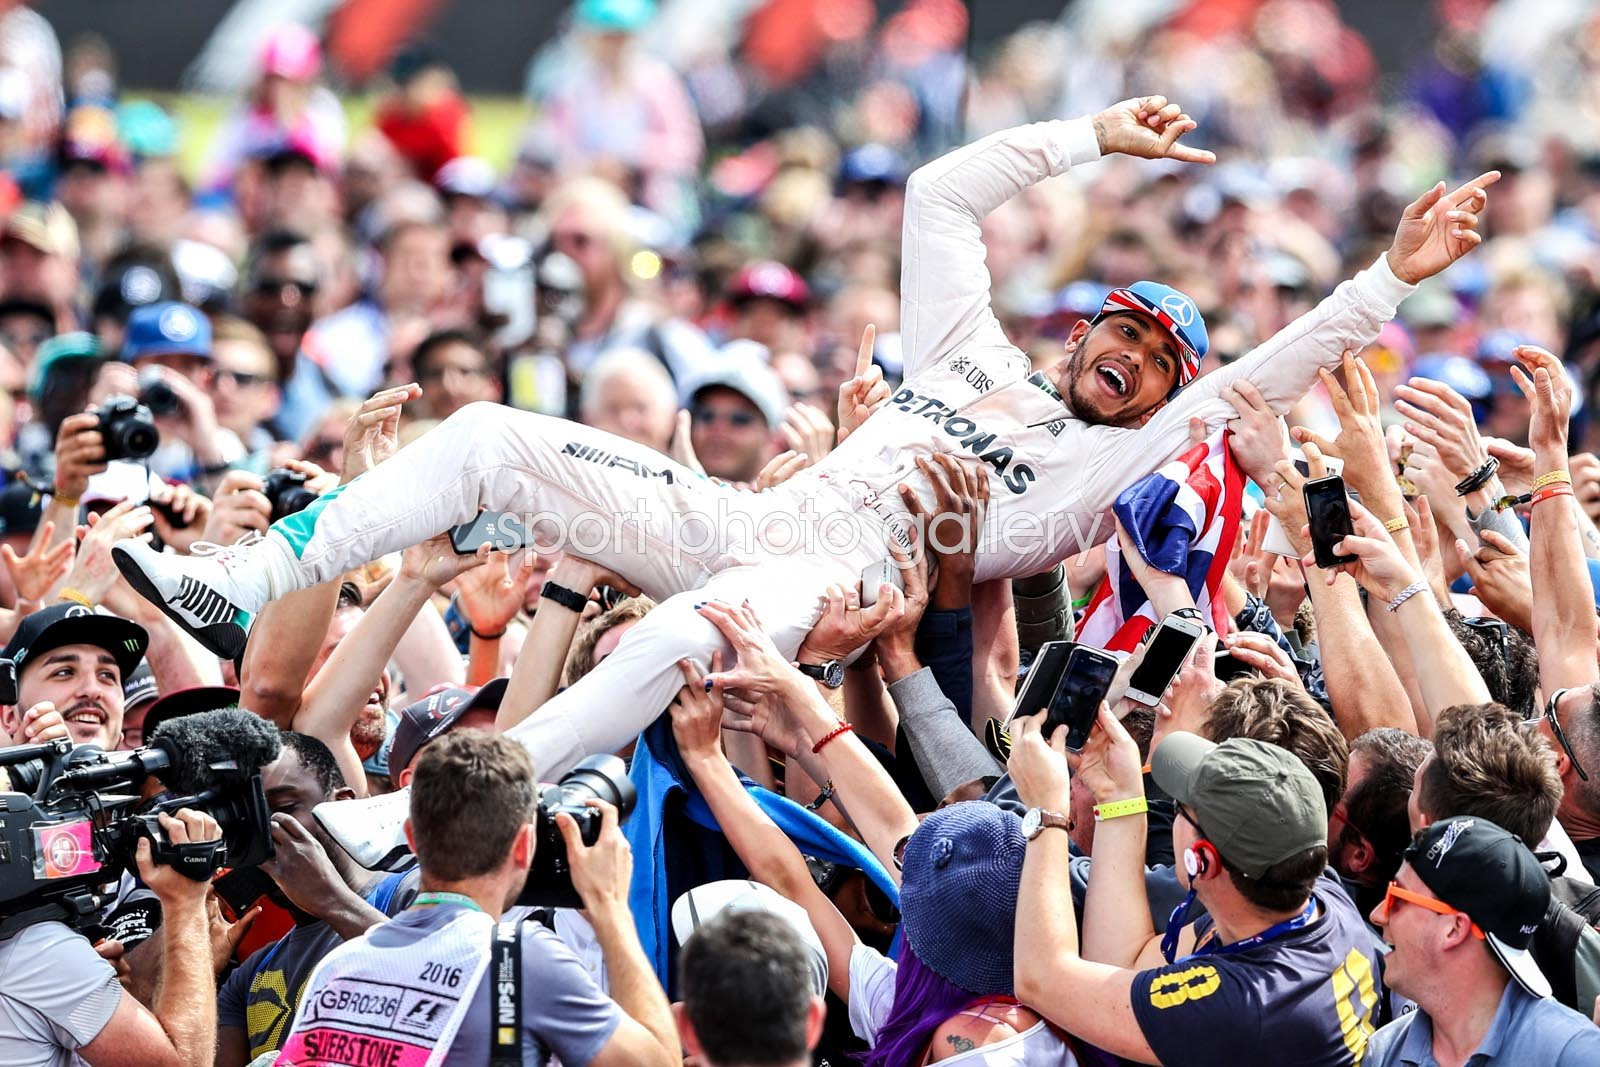 Lewis Hamilton Great Britain & Mercedes Crowd Celebration Silverstone 2016